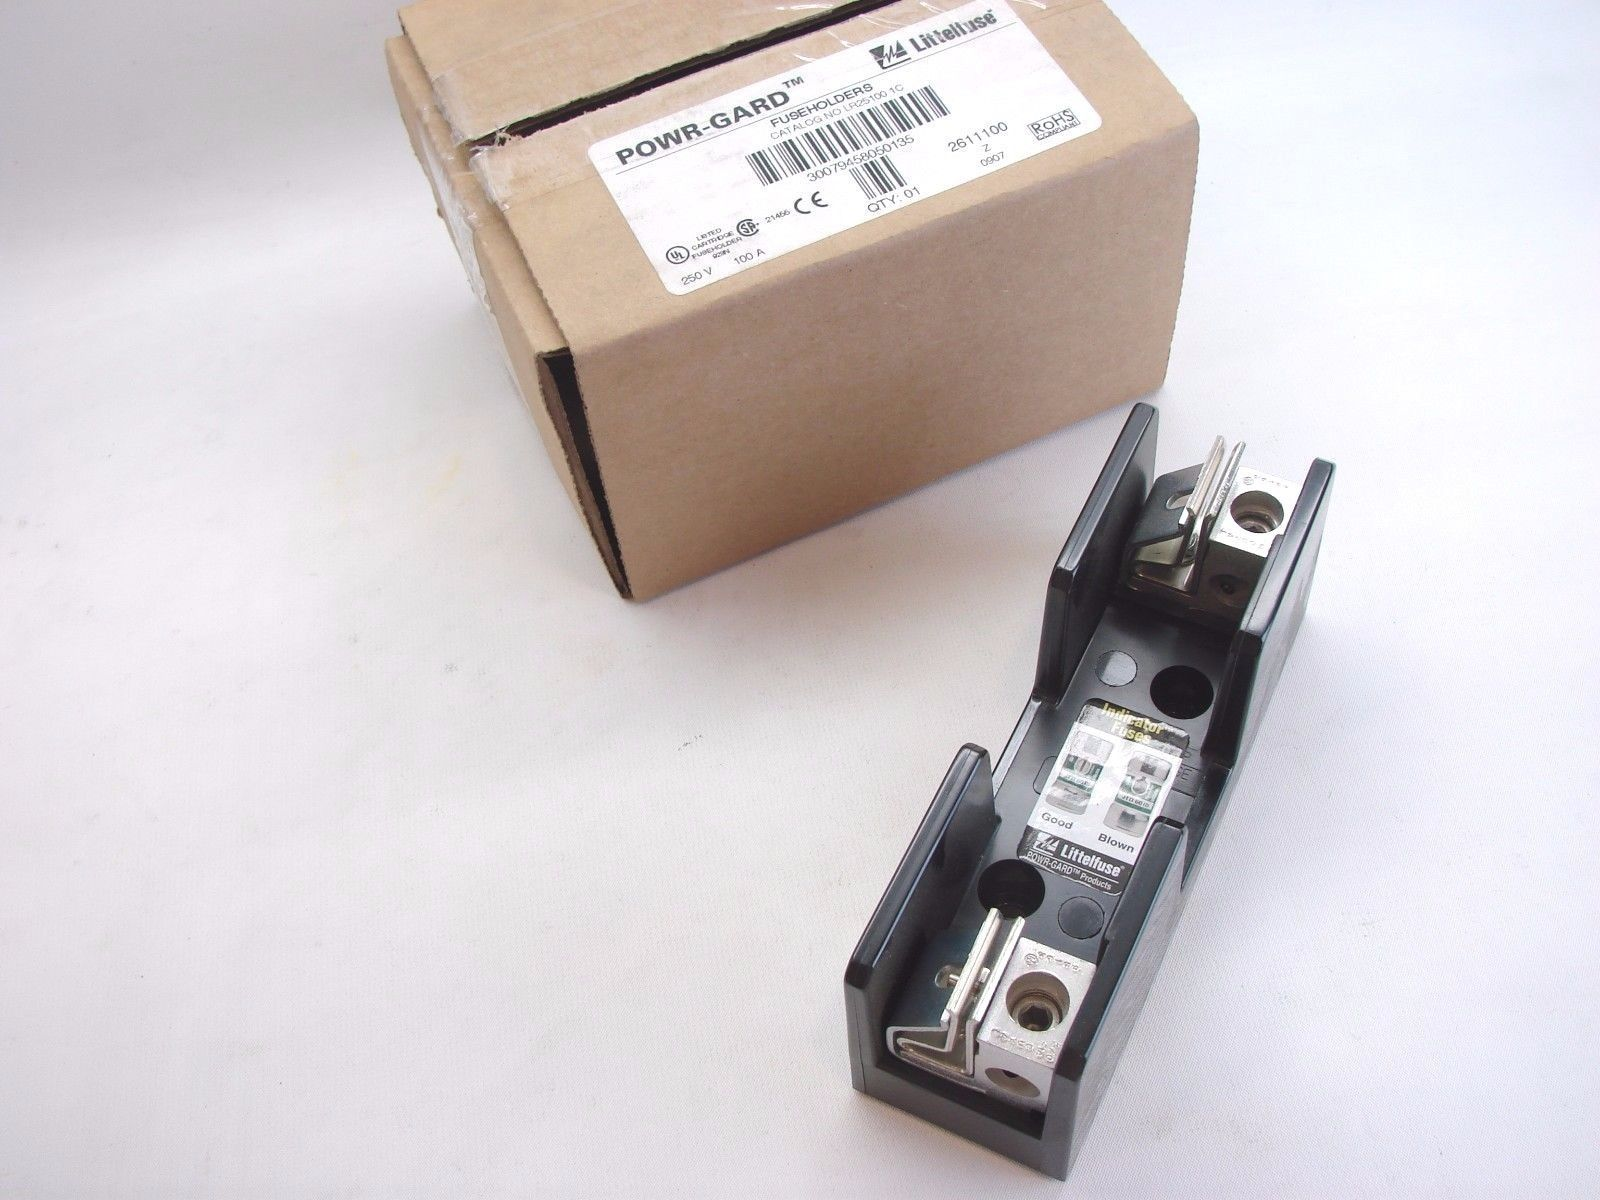 Littlefuse Fuse Box Holder Littelfuse Powr Gard Lr25100 1c Single Class And 50 Similar Items R Block 250v 100a New B230